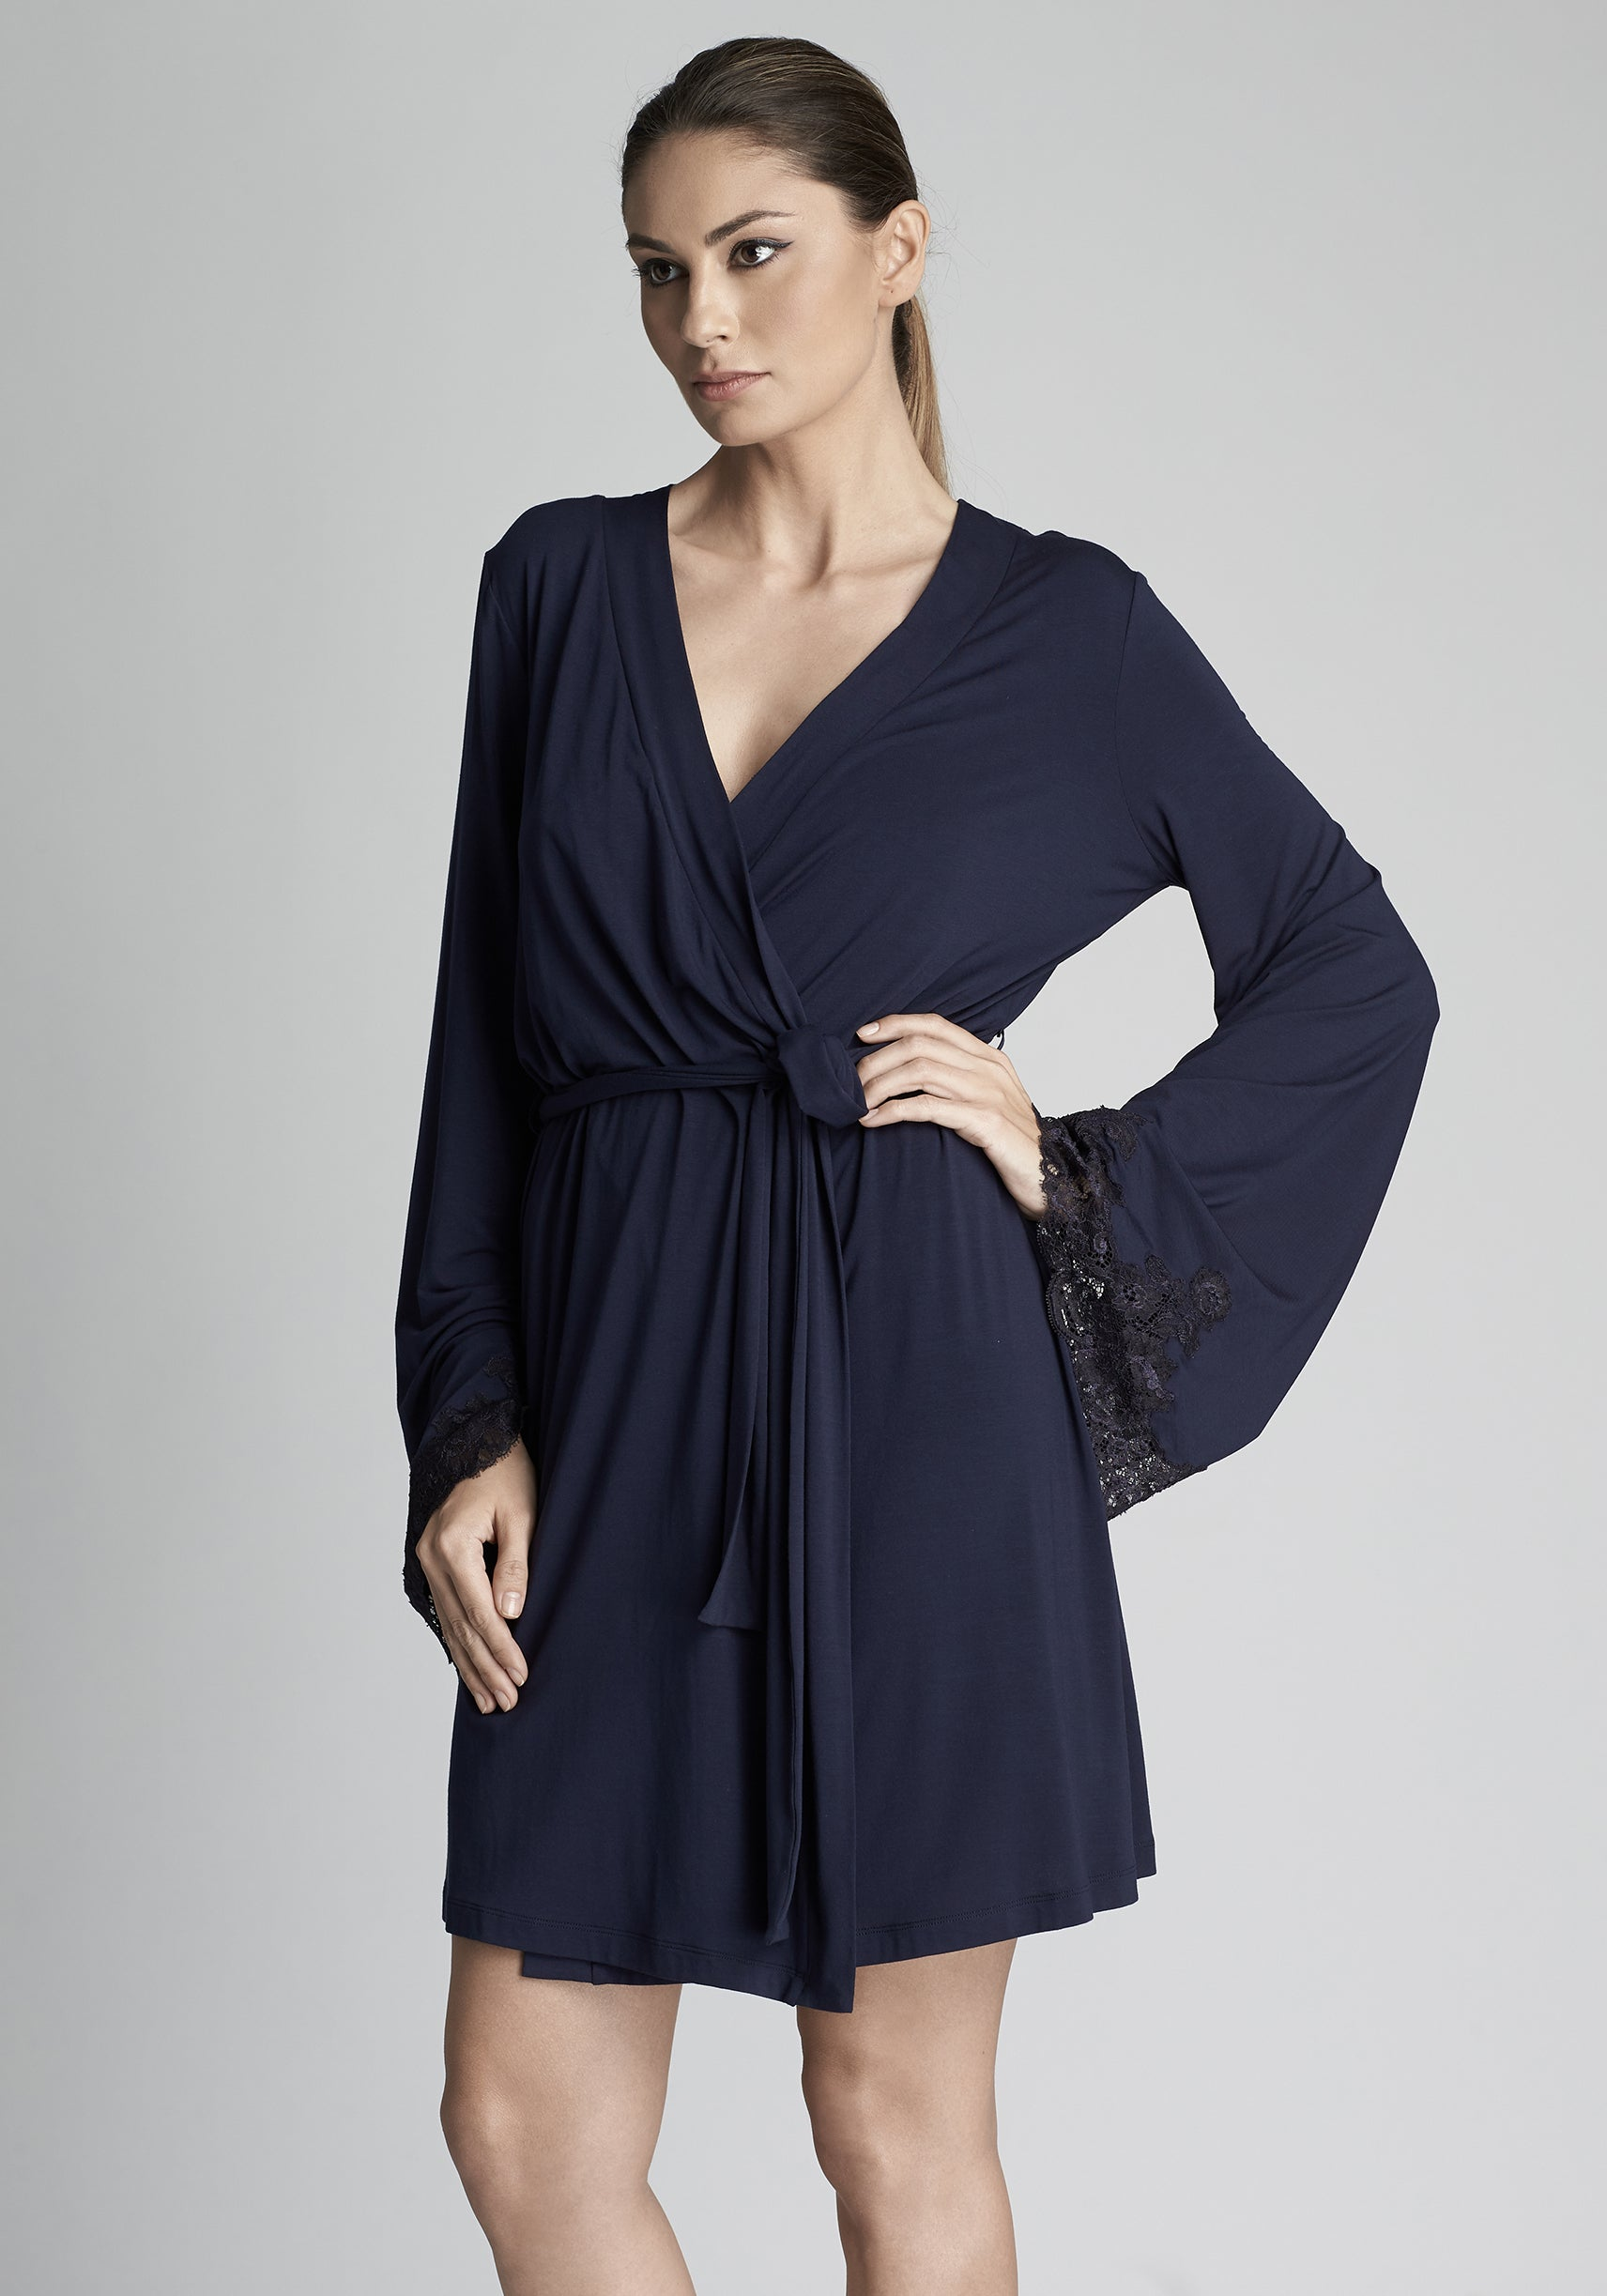 Isolde Mini Robe With Lace Insets in Navy Blue